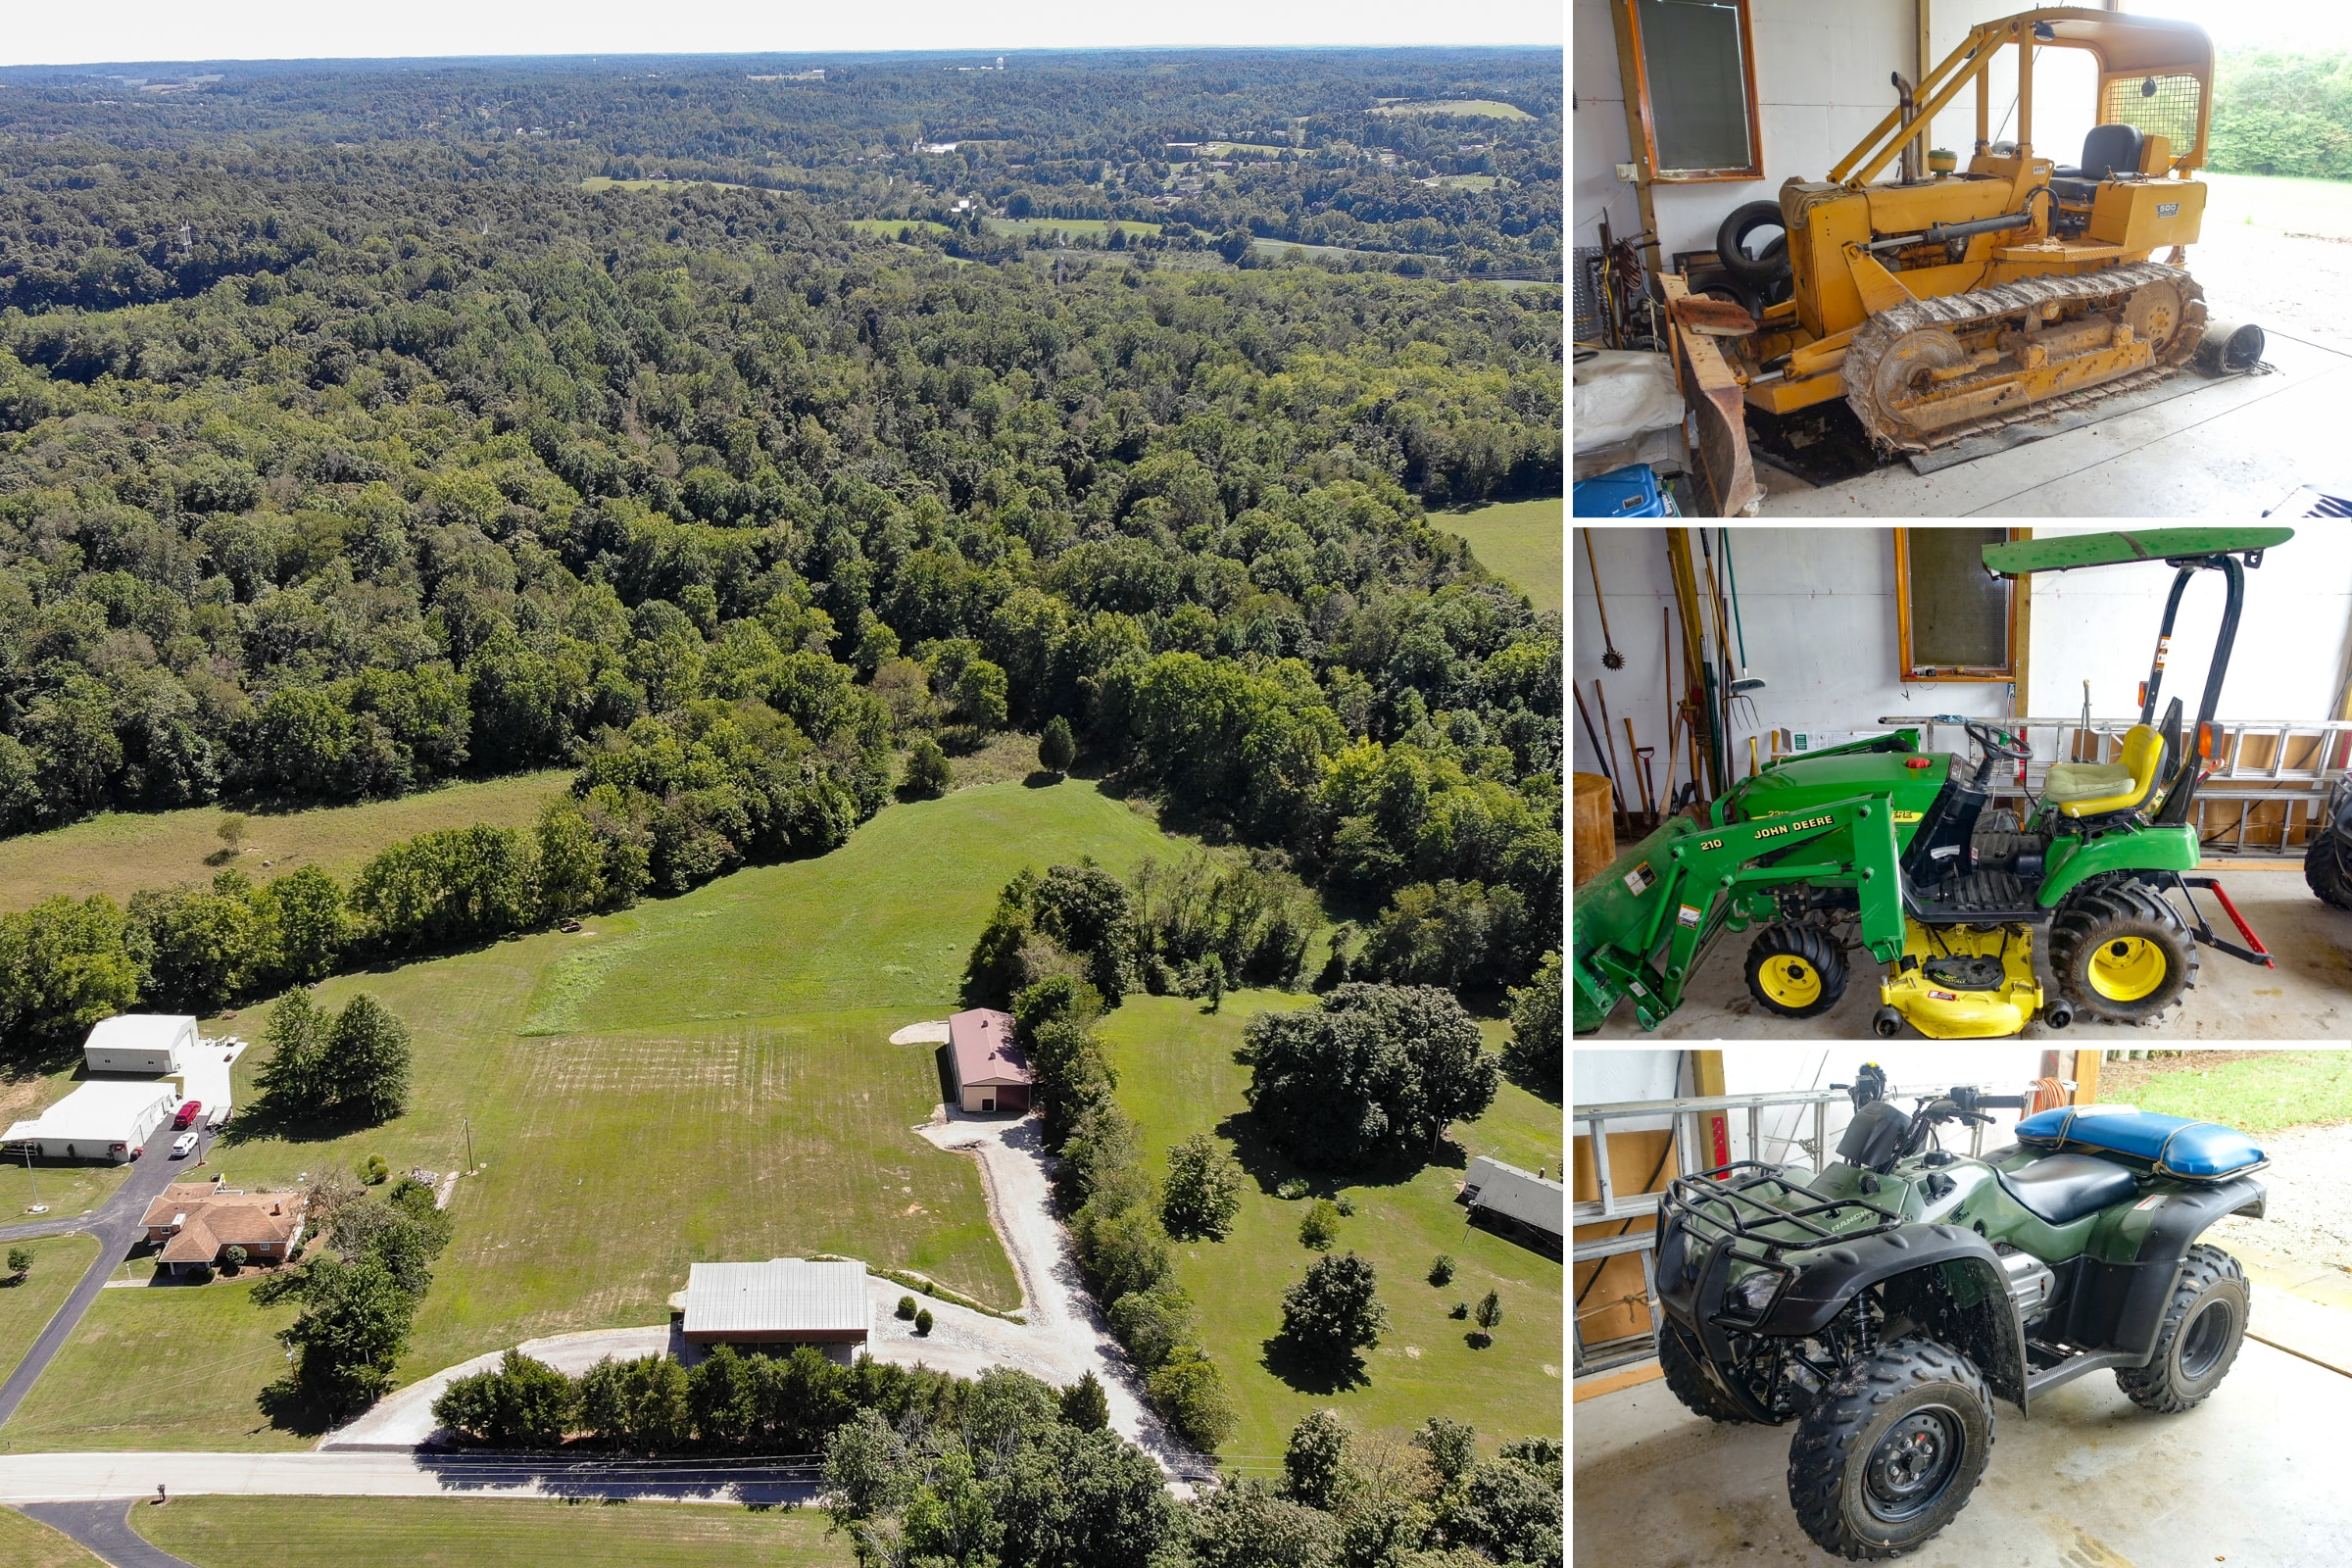 43 Acres, Home, Barn & Contents Auction